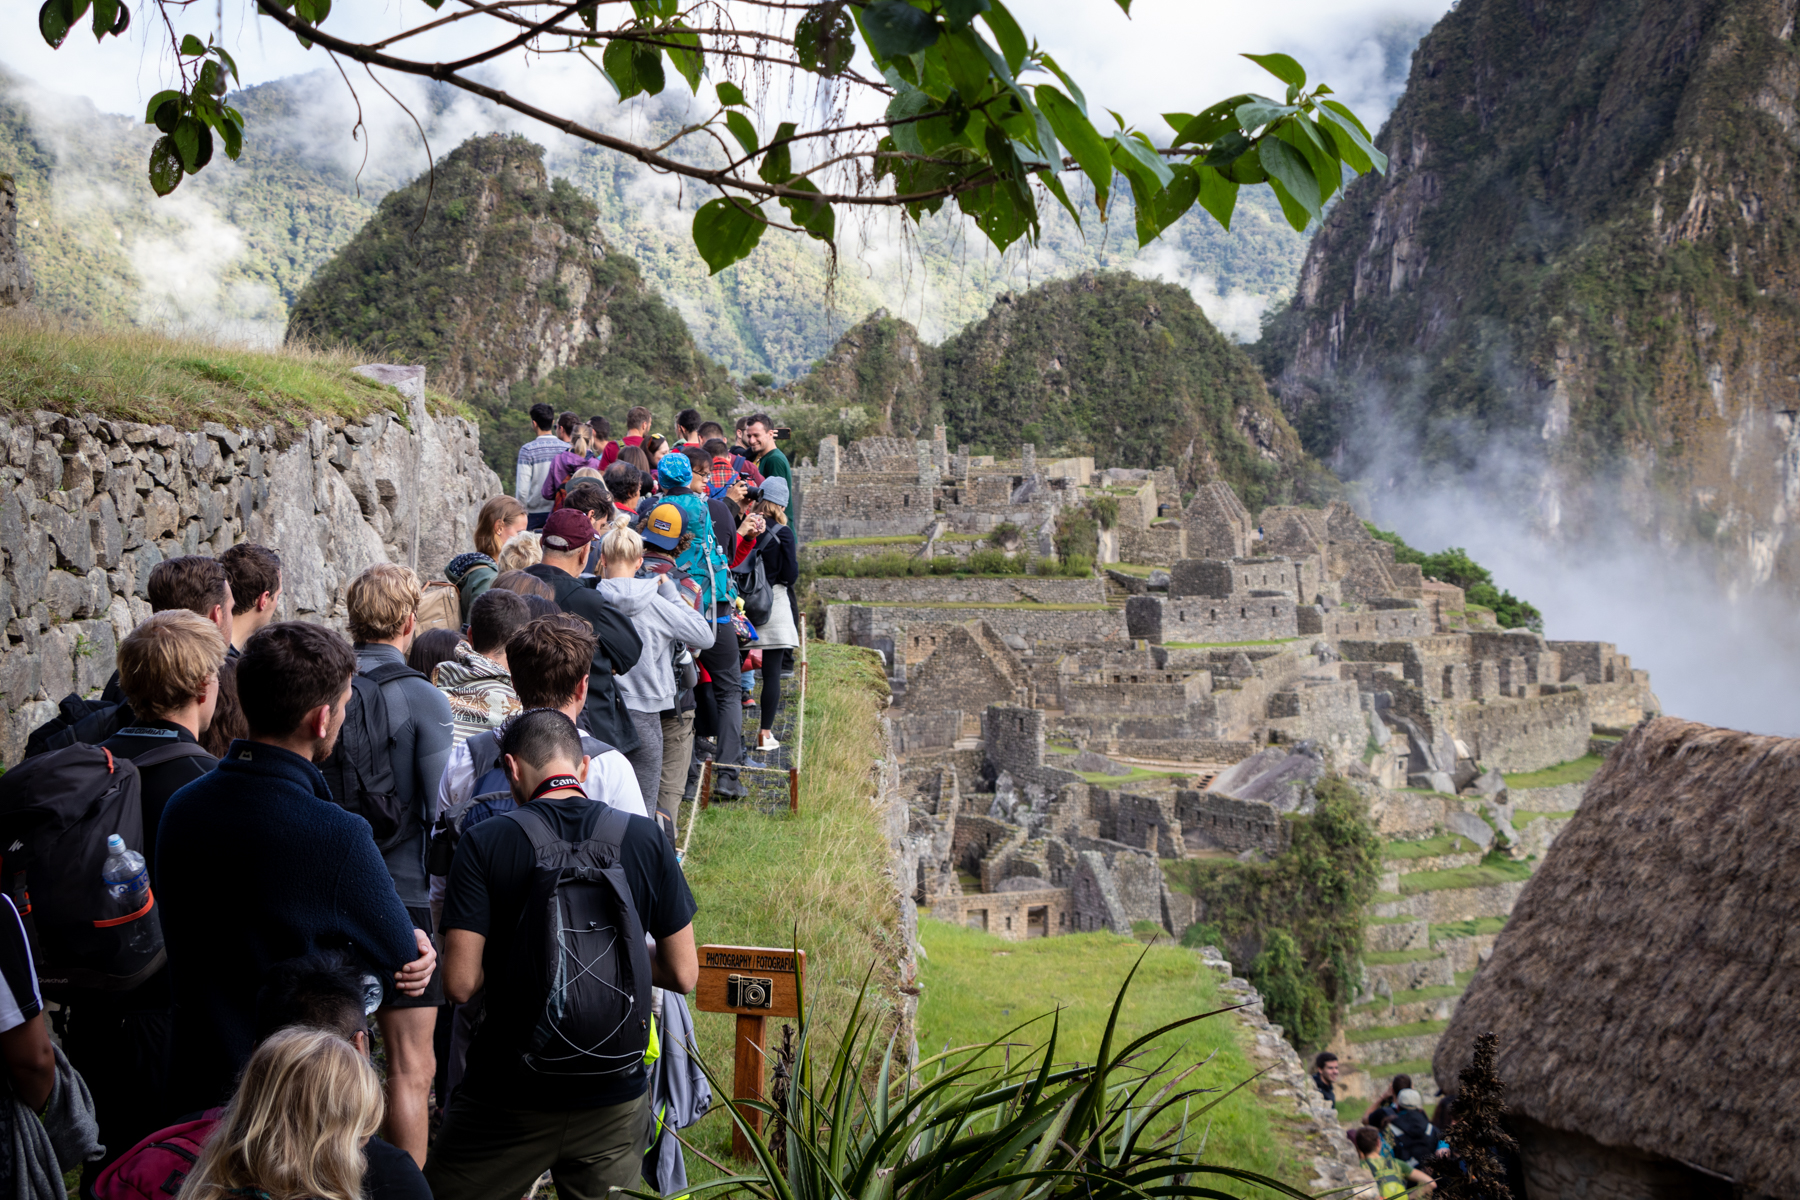 November 2019: Many people are waiting to take a selfi from the observation deck in Machu Picchu. Is the old Inca city currently completely empty?